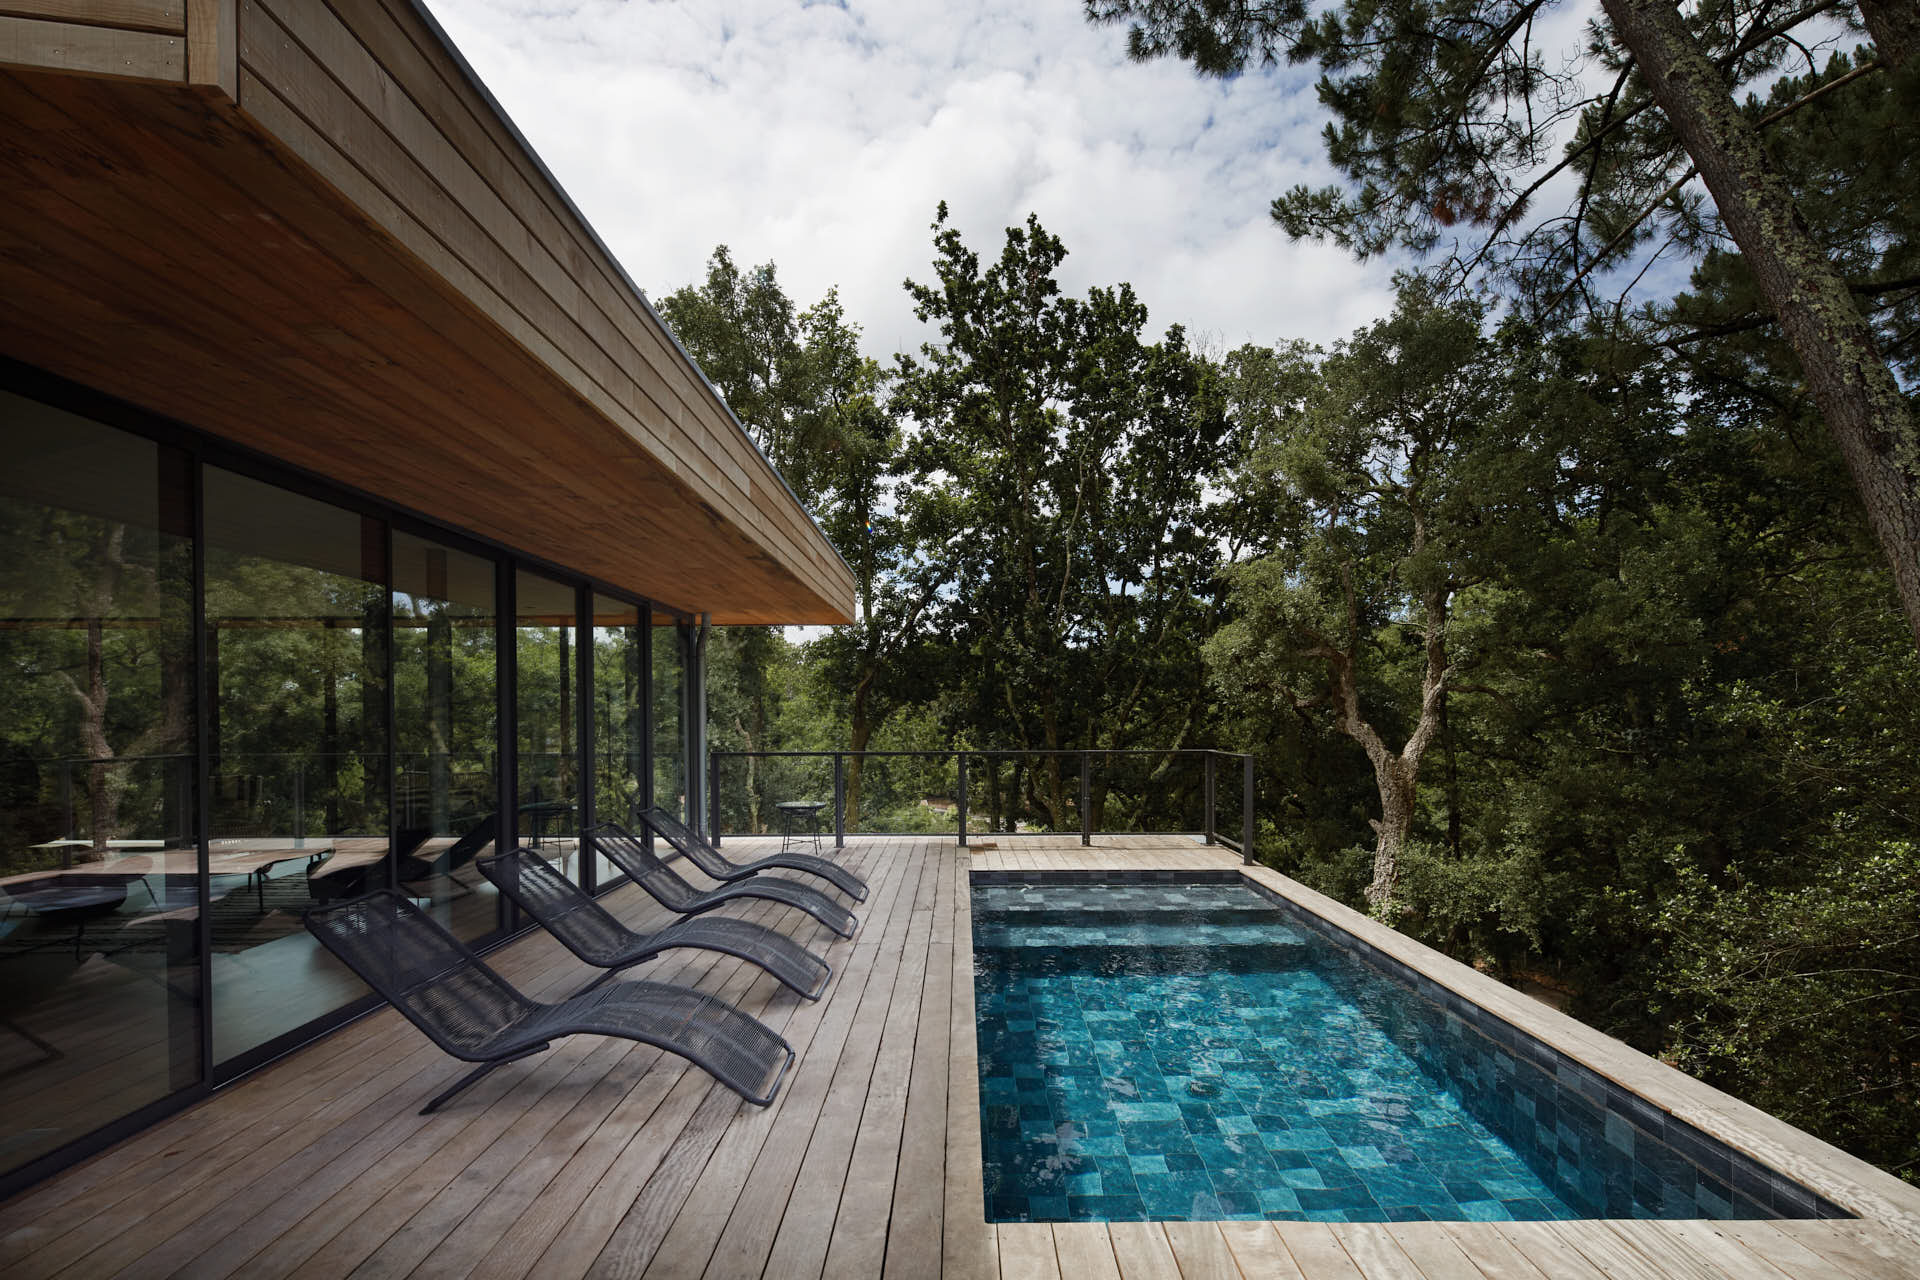 Pool with a pine trees view